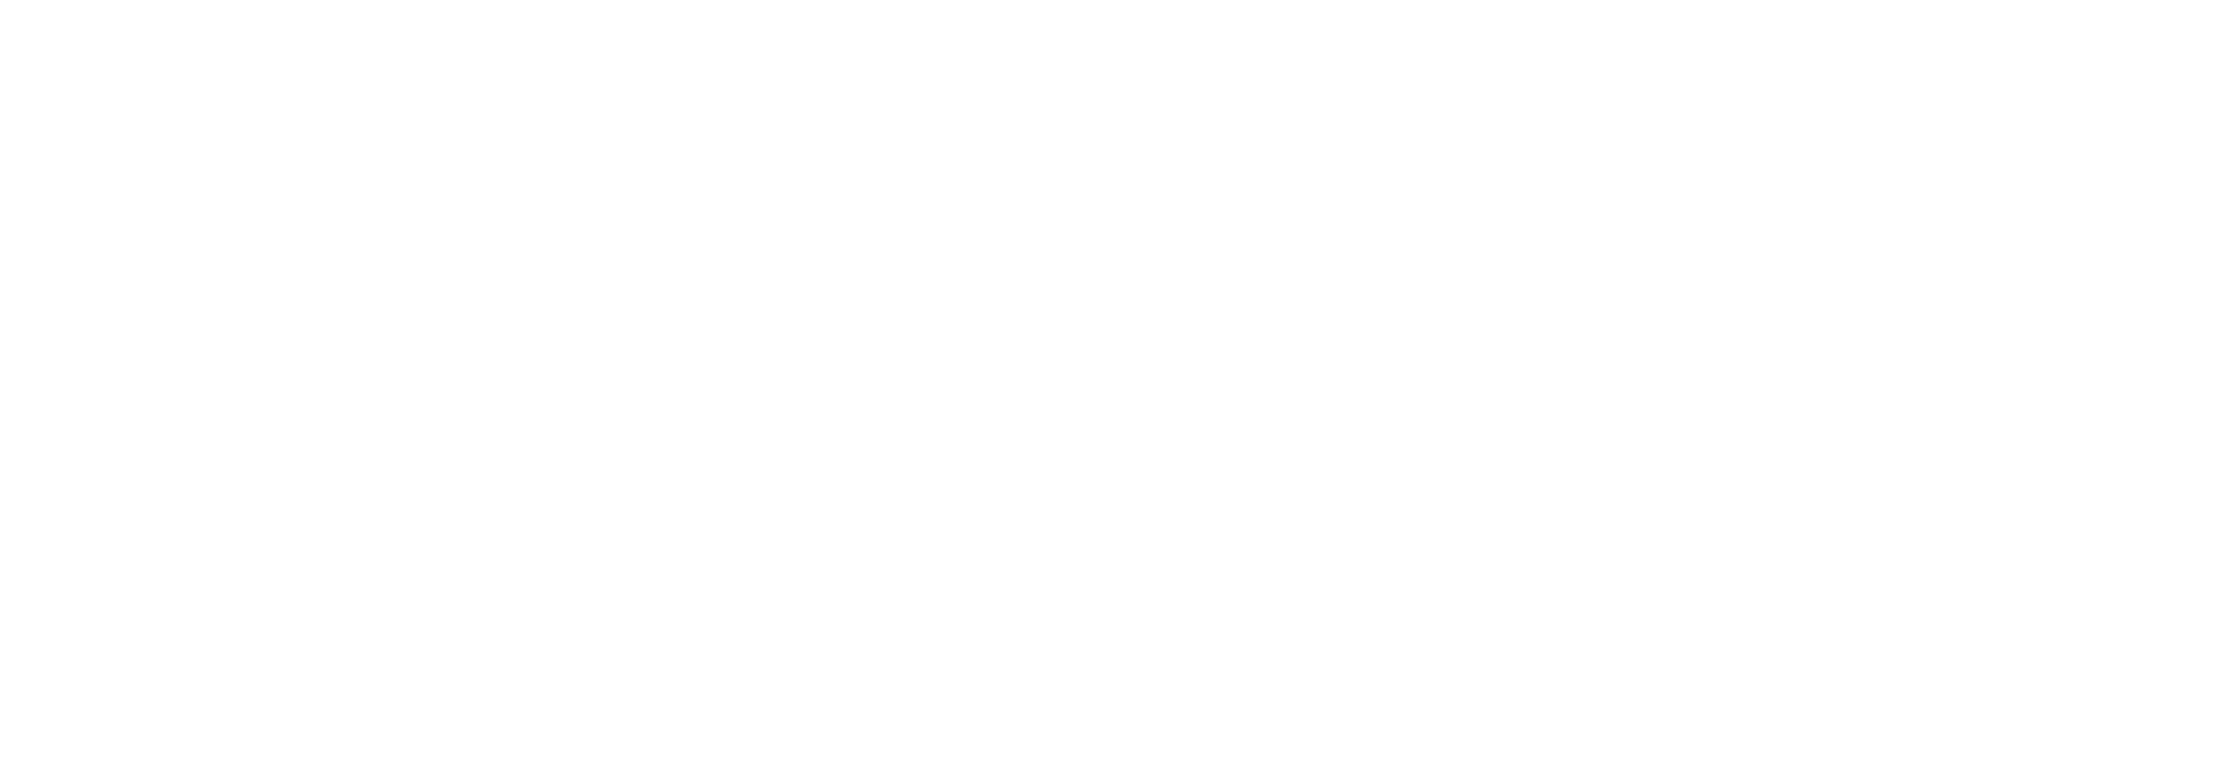 BBSC | Biscay Bay Startup Campus